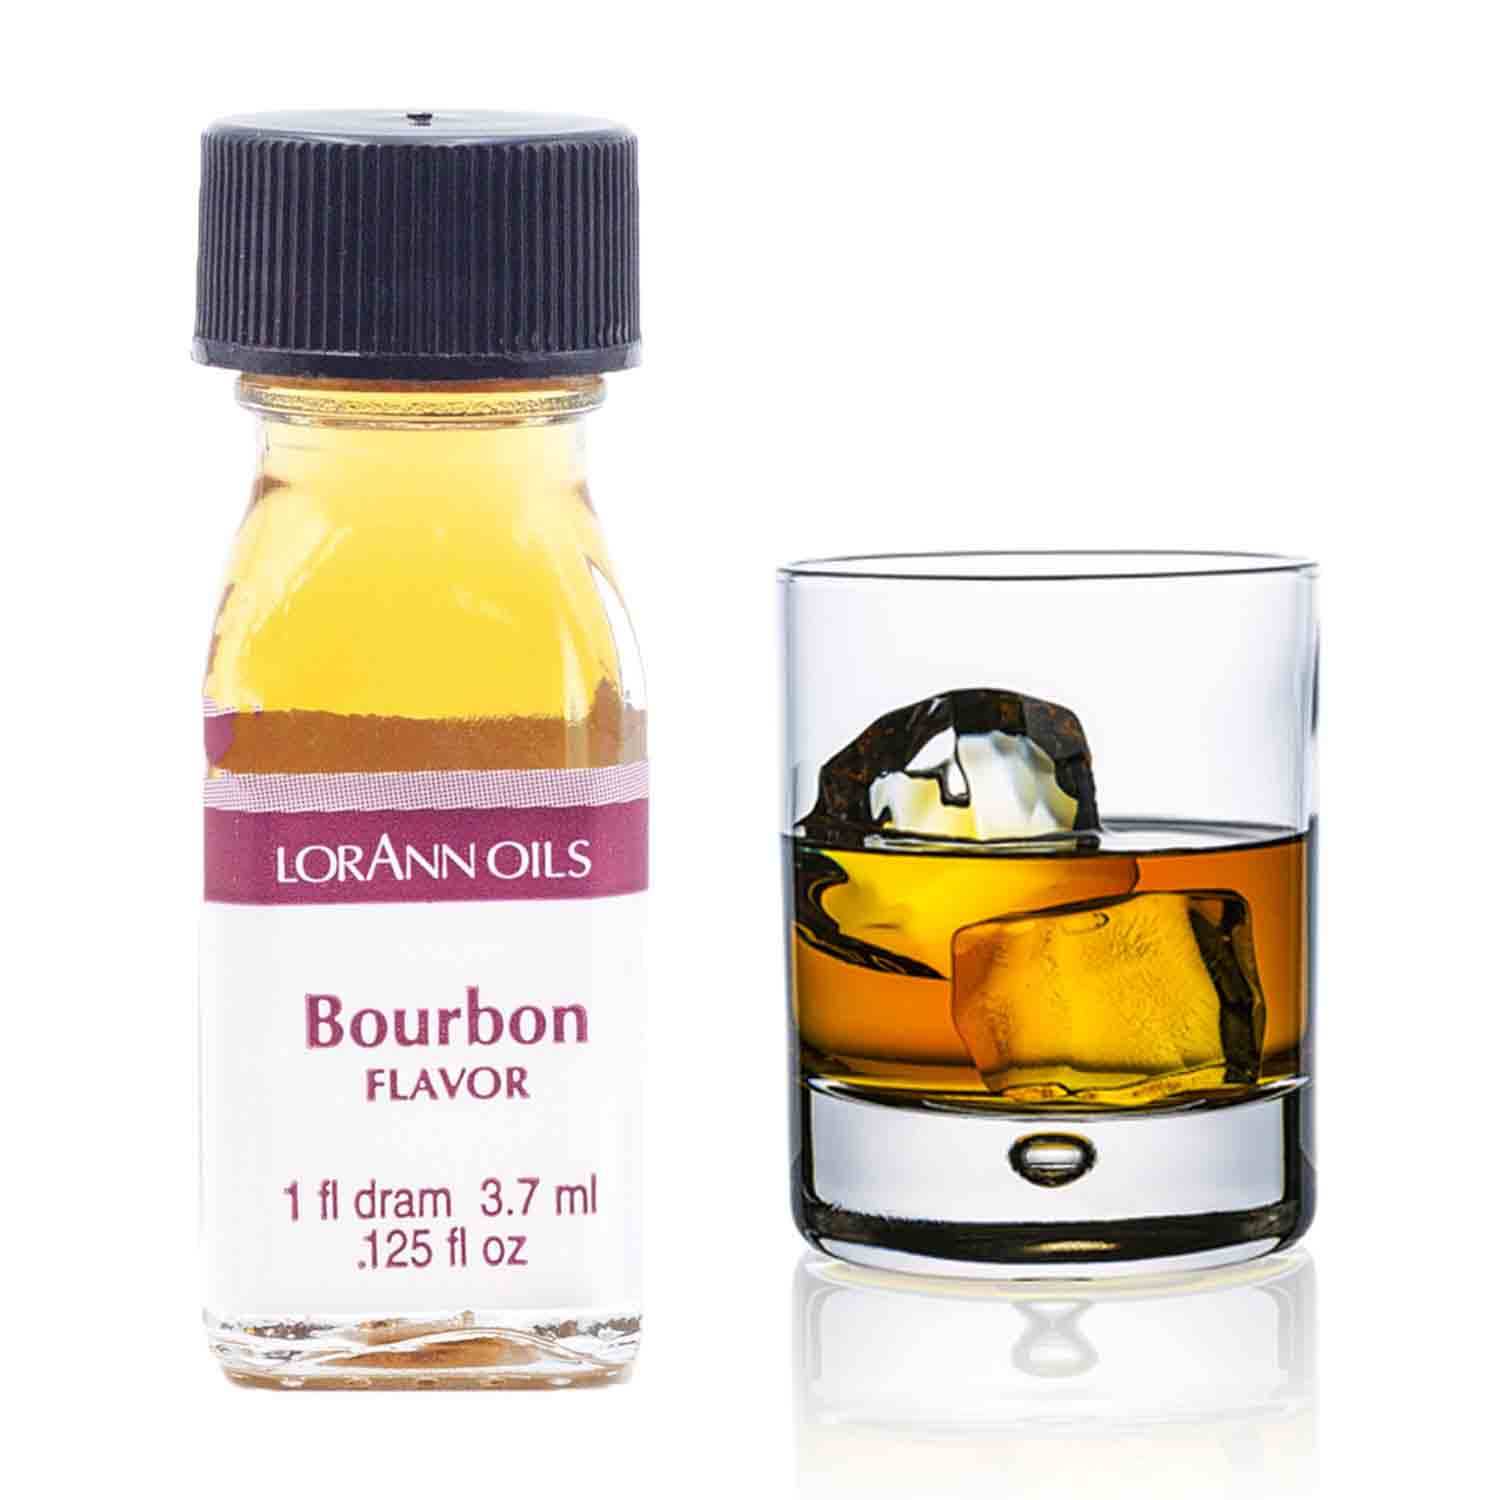 Bourbon LorAnn Super-Strength Flavor